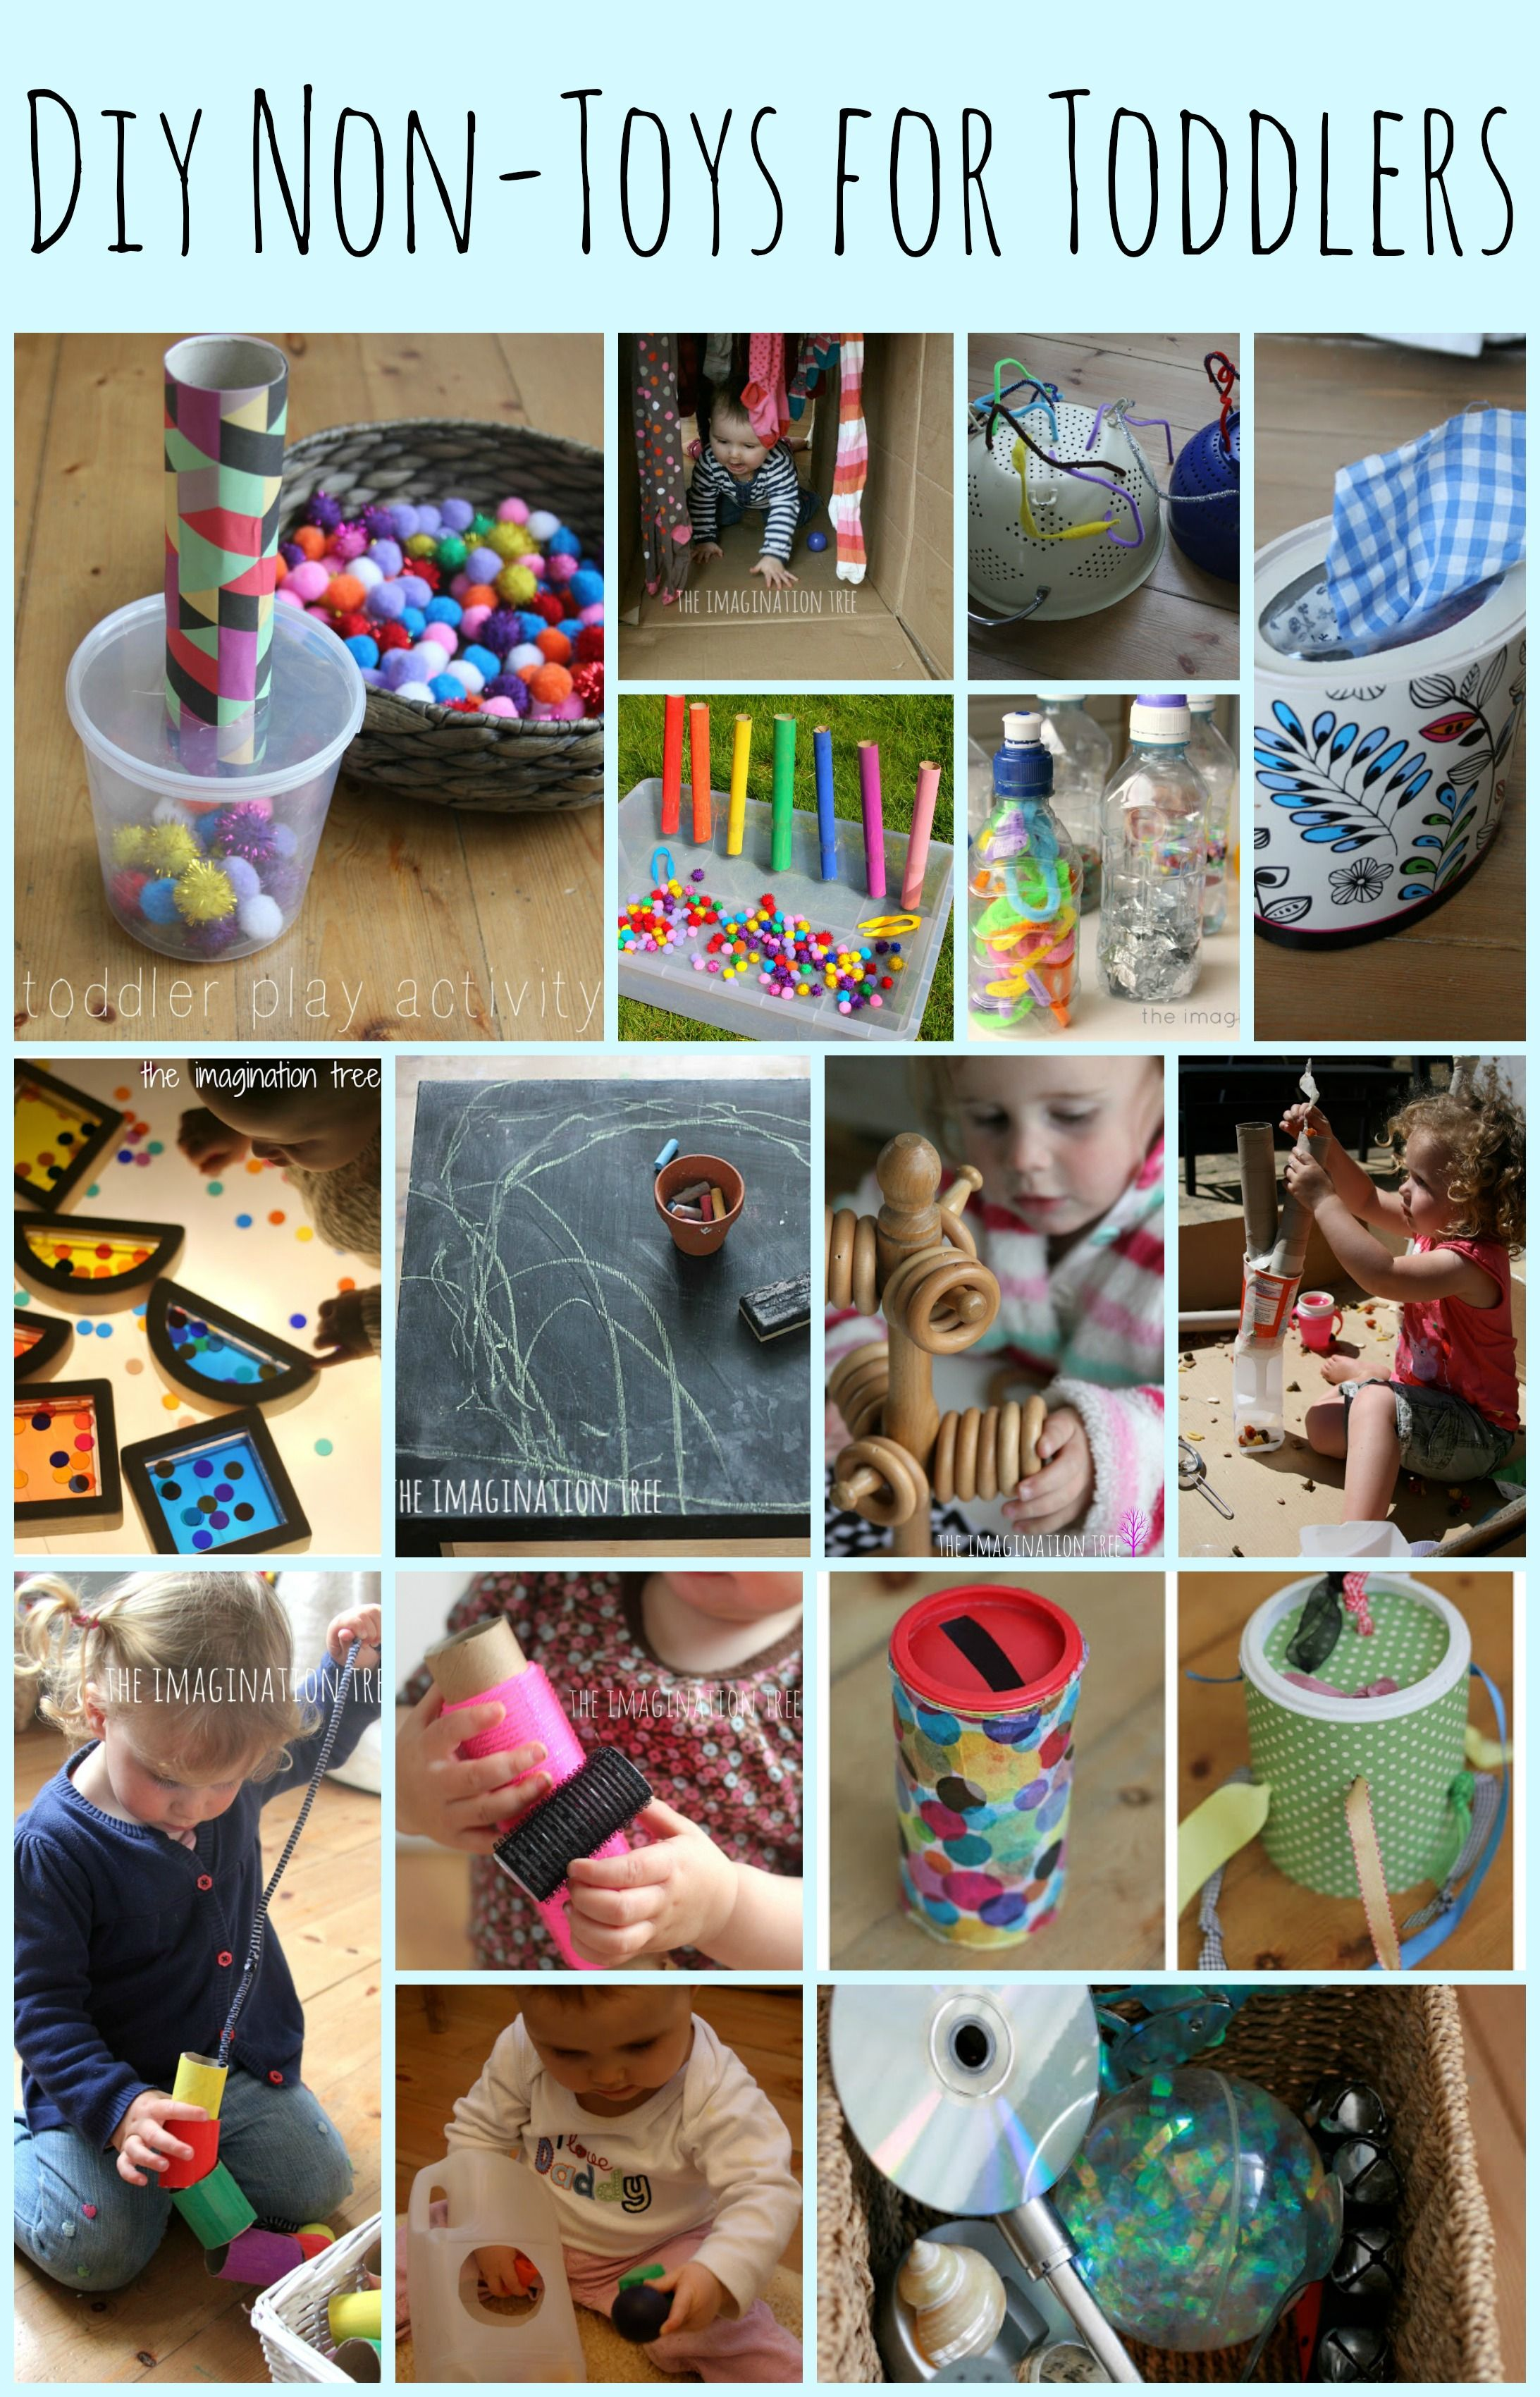 15-DIY-non-toys-for-toddlers.jpg 2 185×3 400 pikseliä